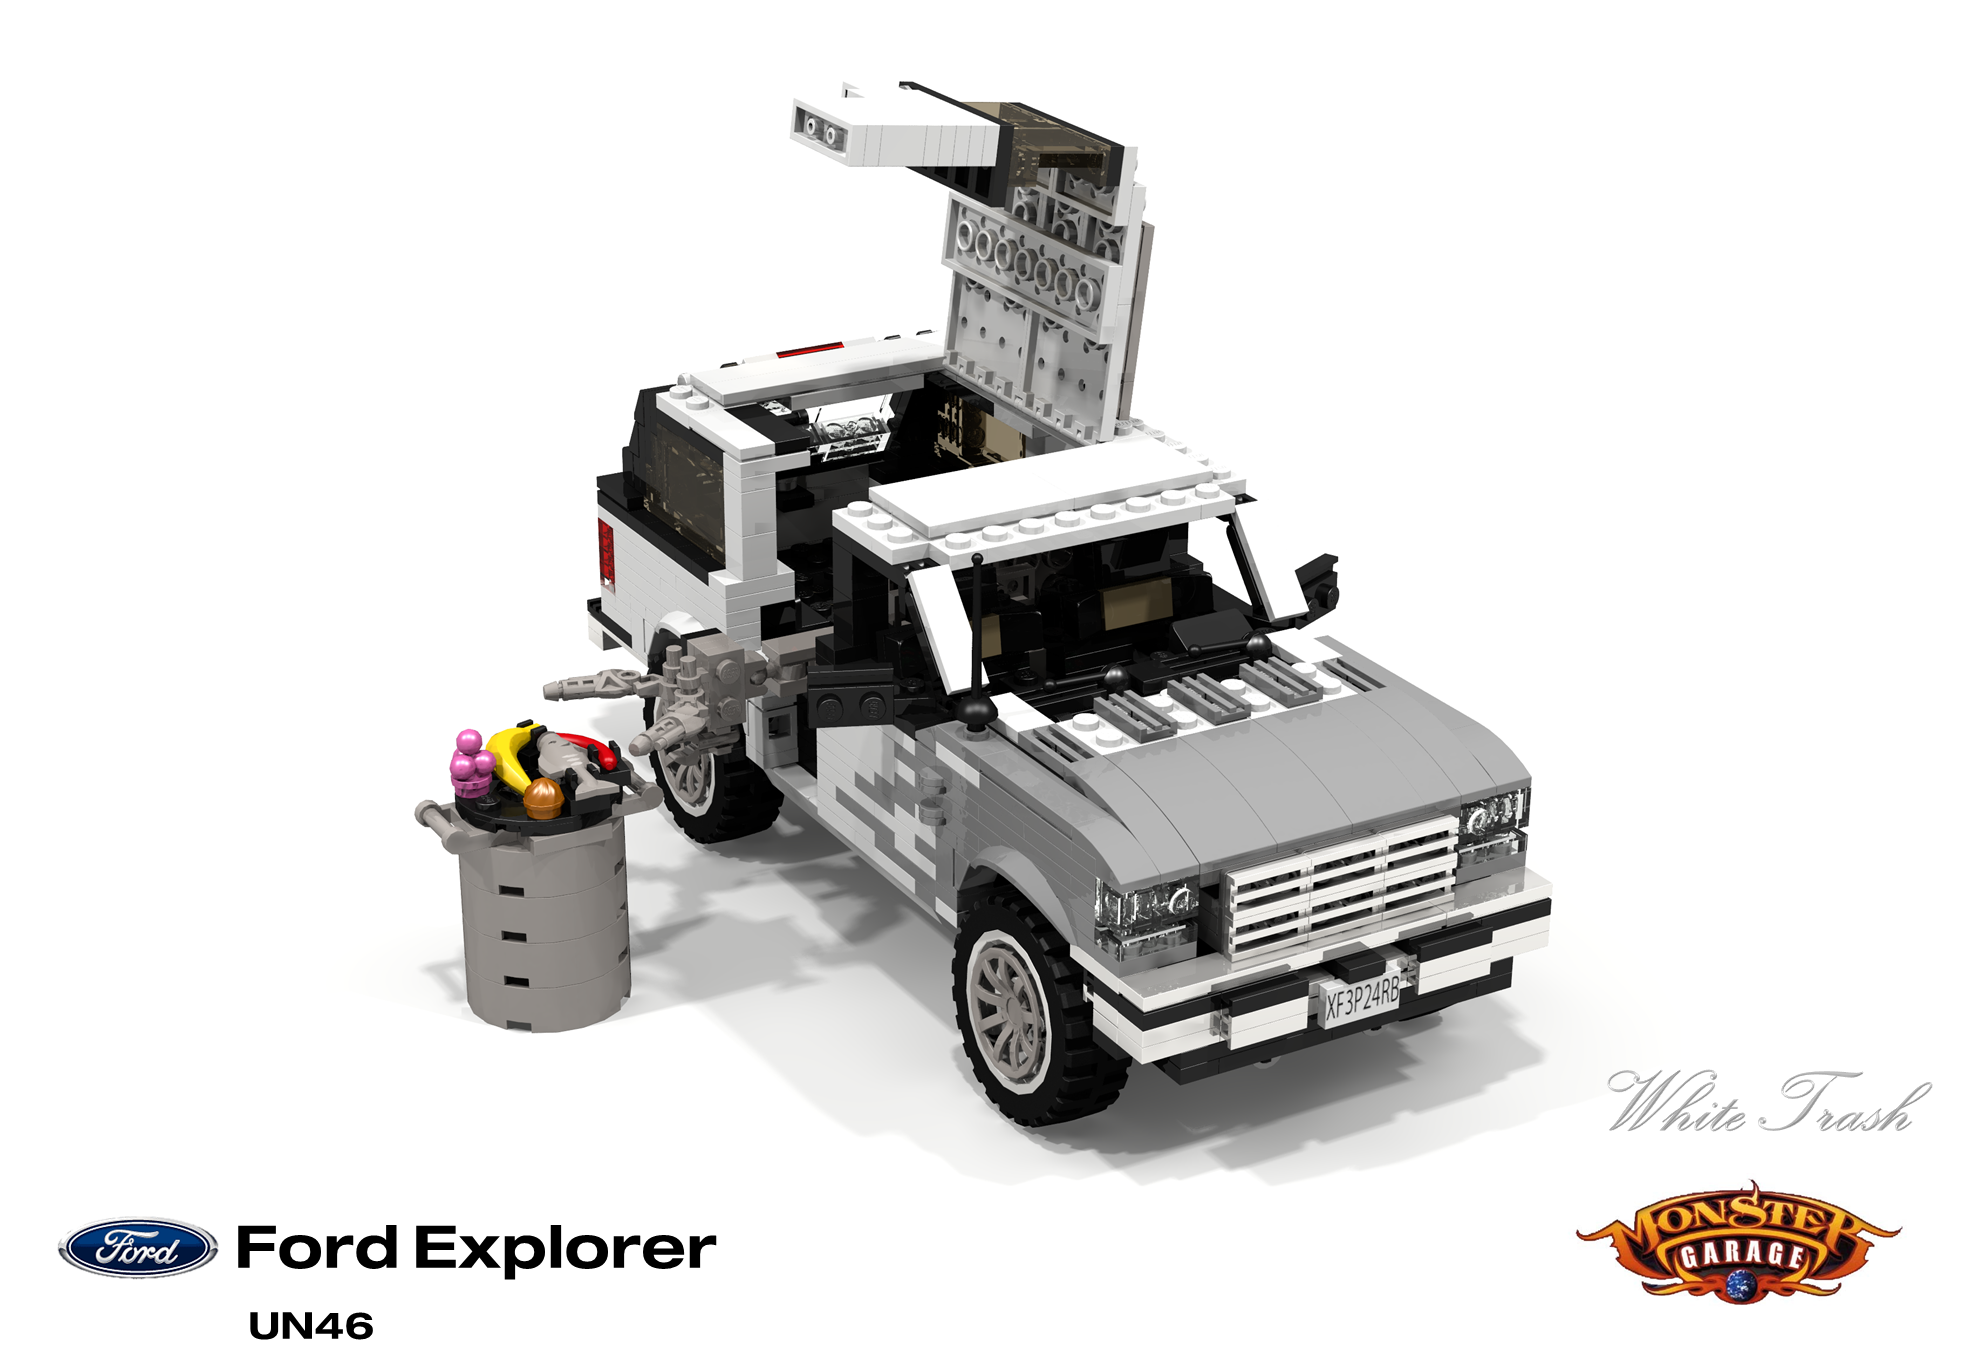 1990_ford_explorer_white_trash.png